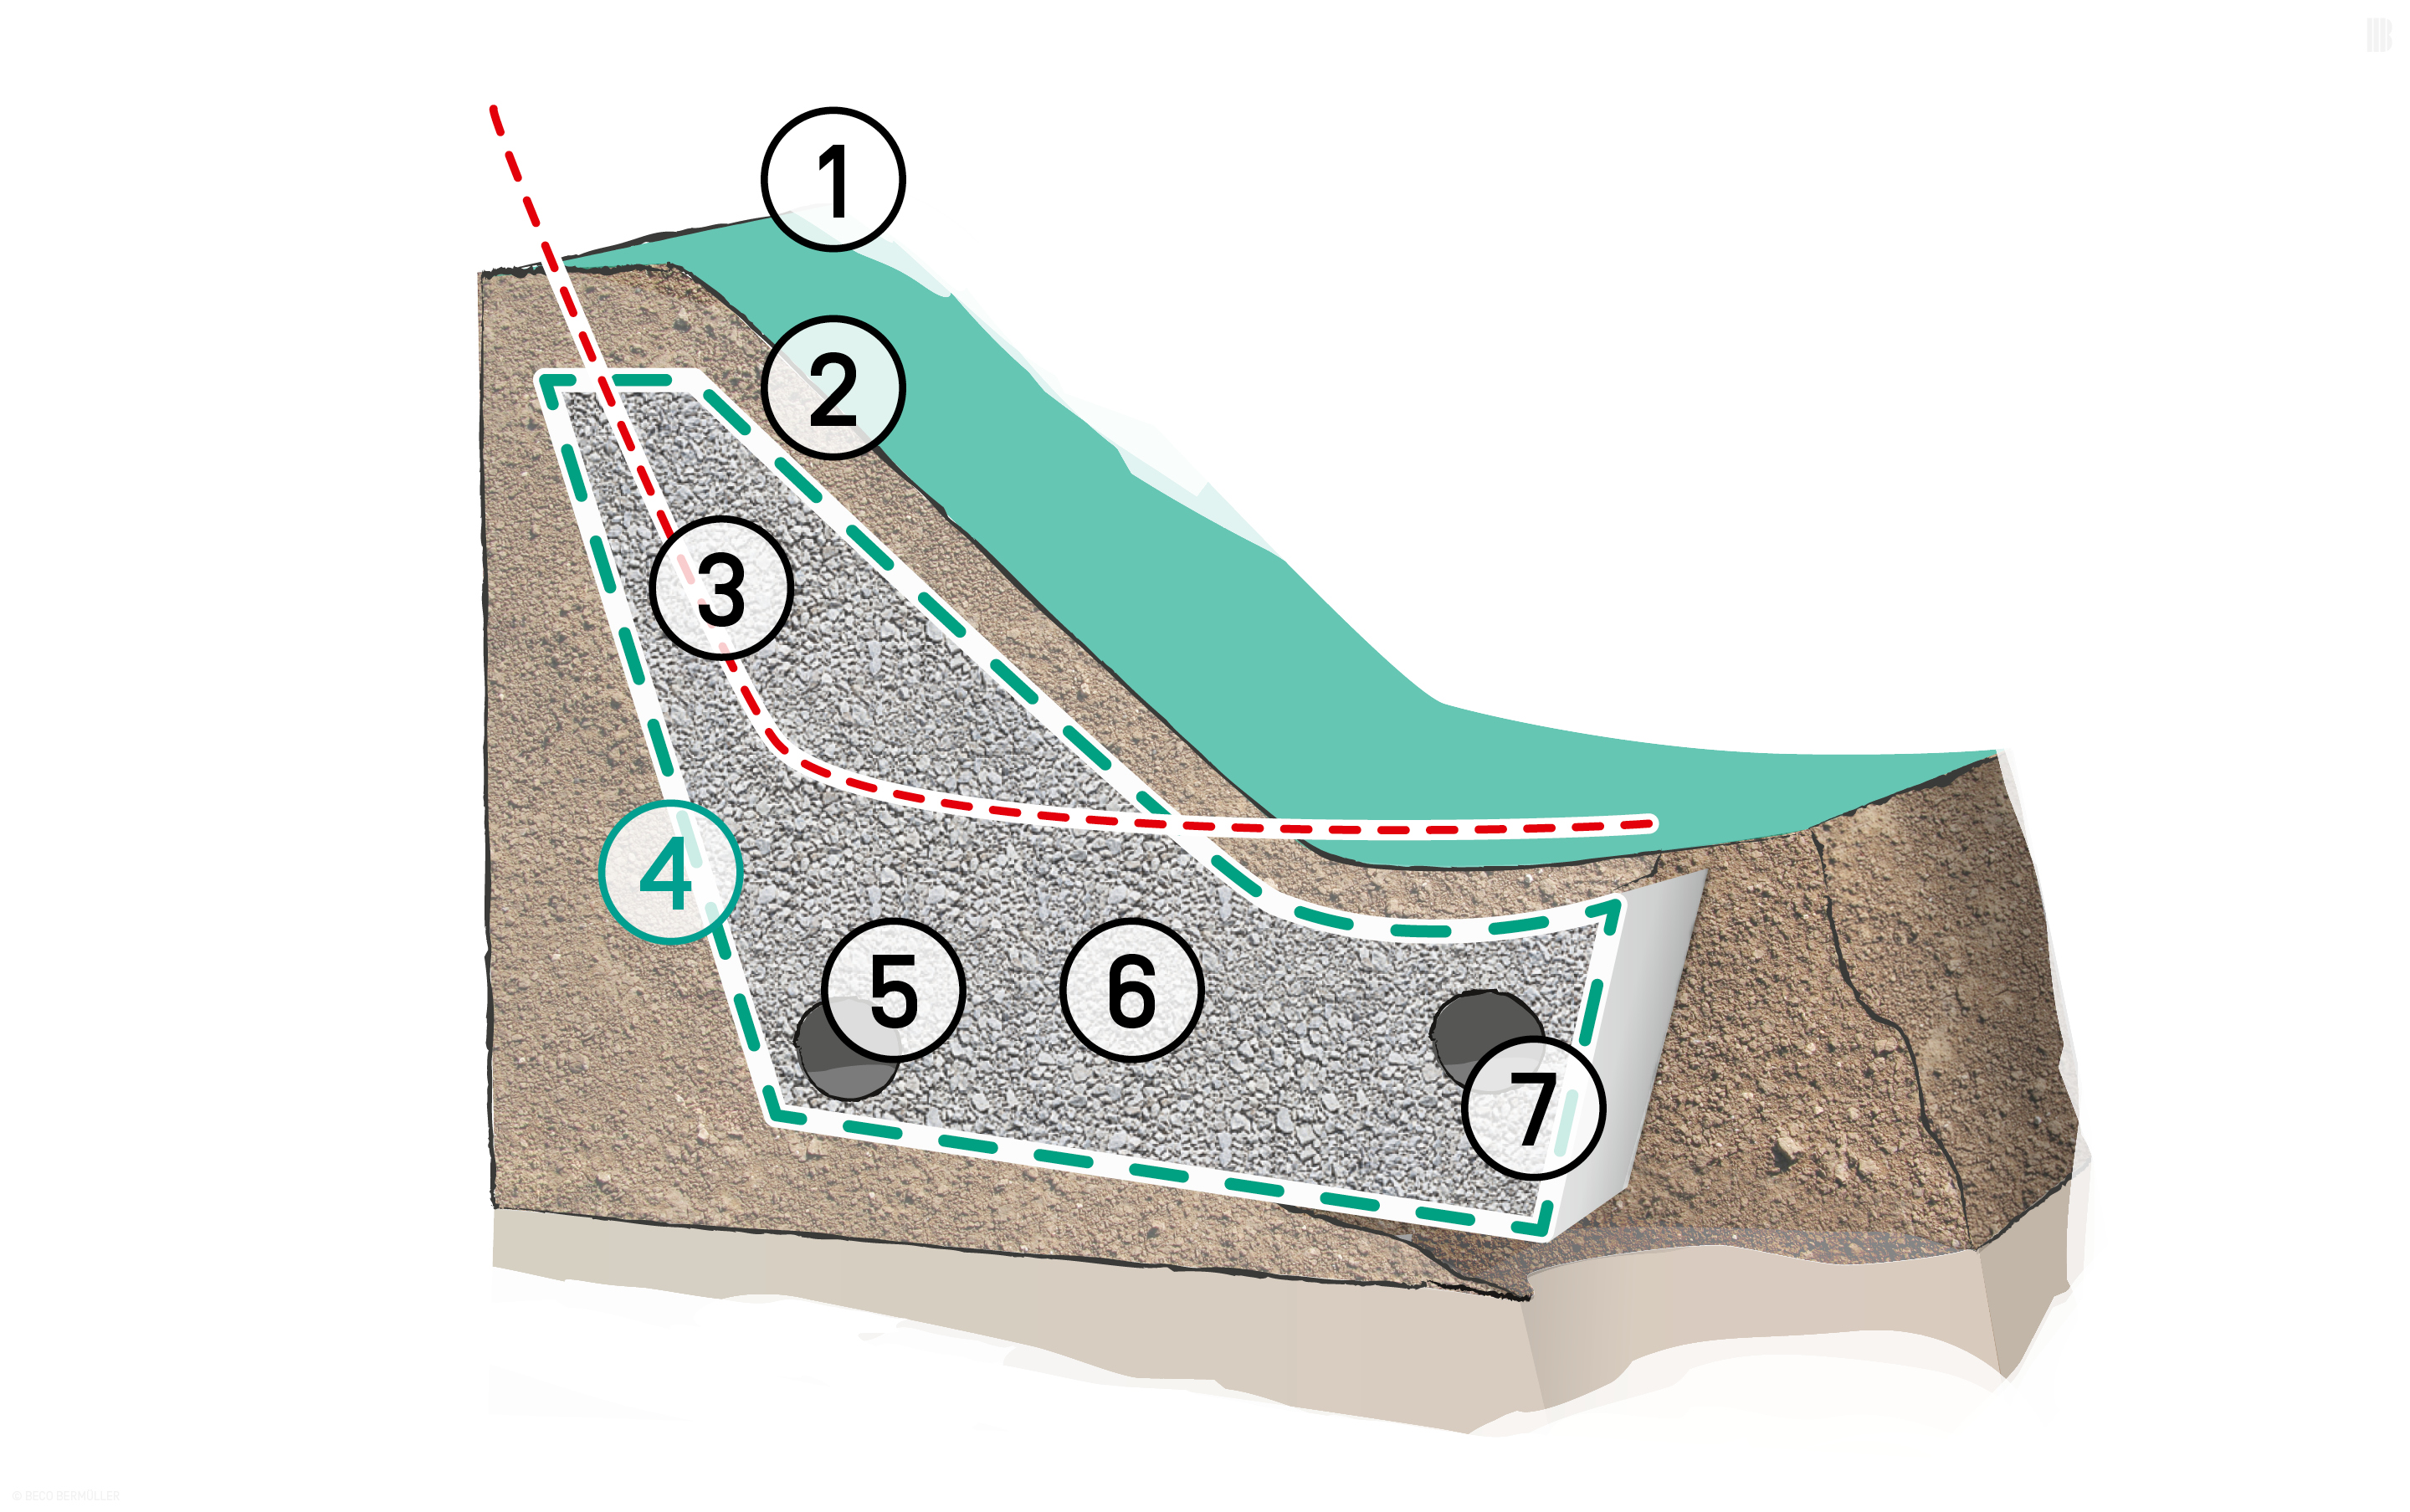 Reinstatement of a slipped embankment by installing a perforated pipe: 1. Soil and vegetation | 2. Standard inclination 1 : 1.5 | 3. Plane of previous slip | 4. BONTEC NW Non-woven Fabric | 5. Partially perforated pipe | 6. Free-draining fill material | 7. Perforated pipes or longitudinal road drainage